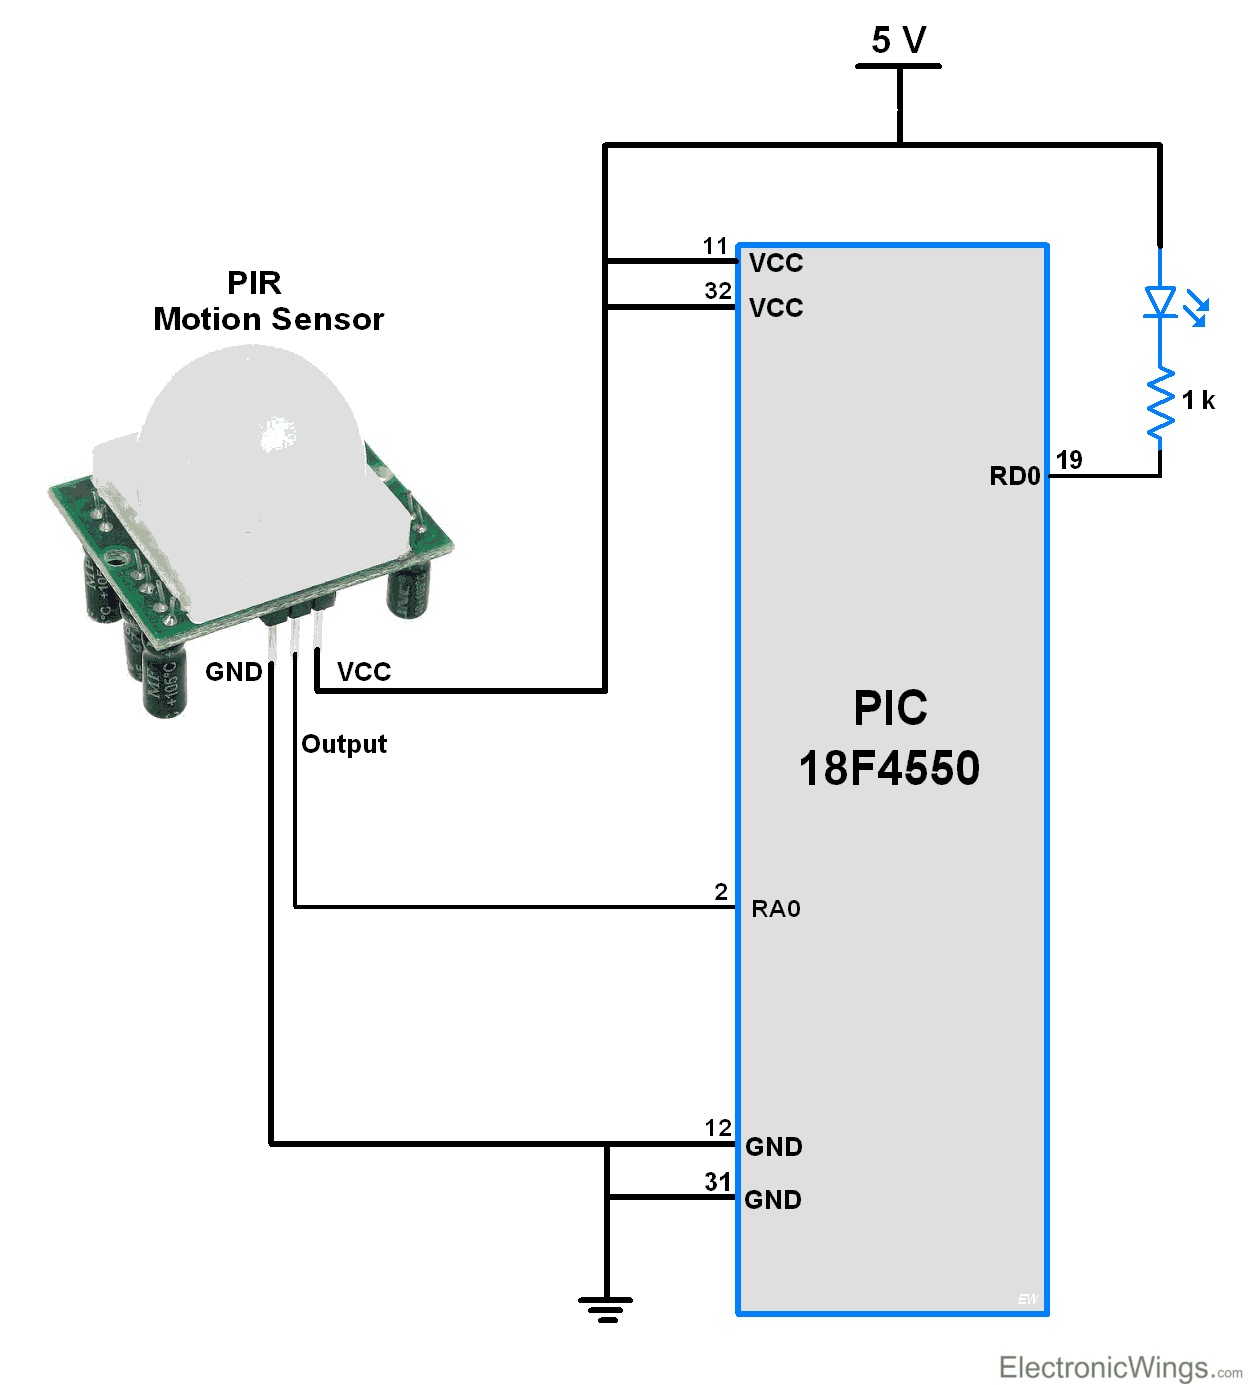 hight resolution of pir motion sensor wiring diagram for a arduino uno pinout bosch pir motion sensor kit iphone pir motion sensor